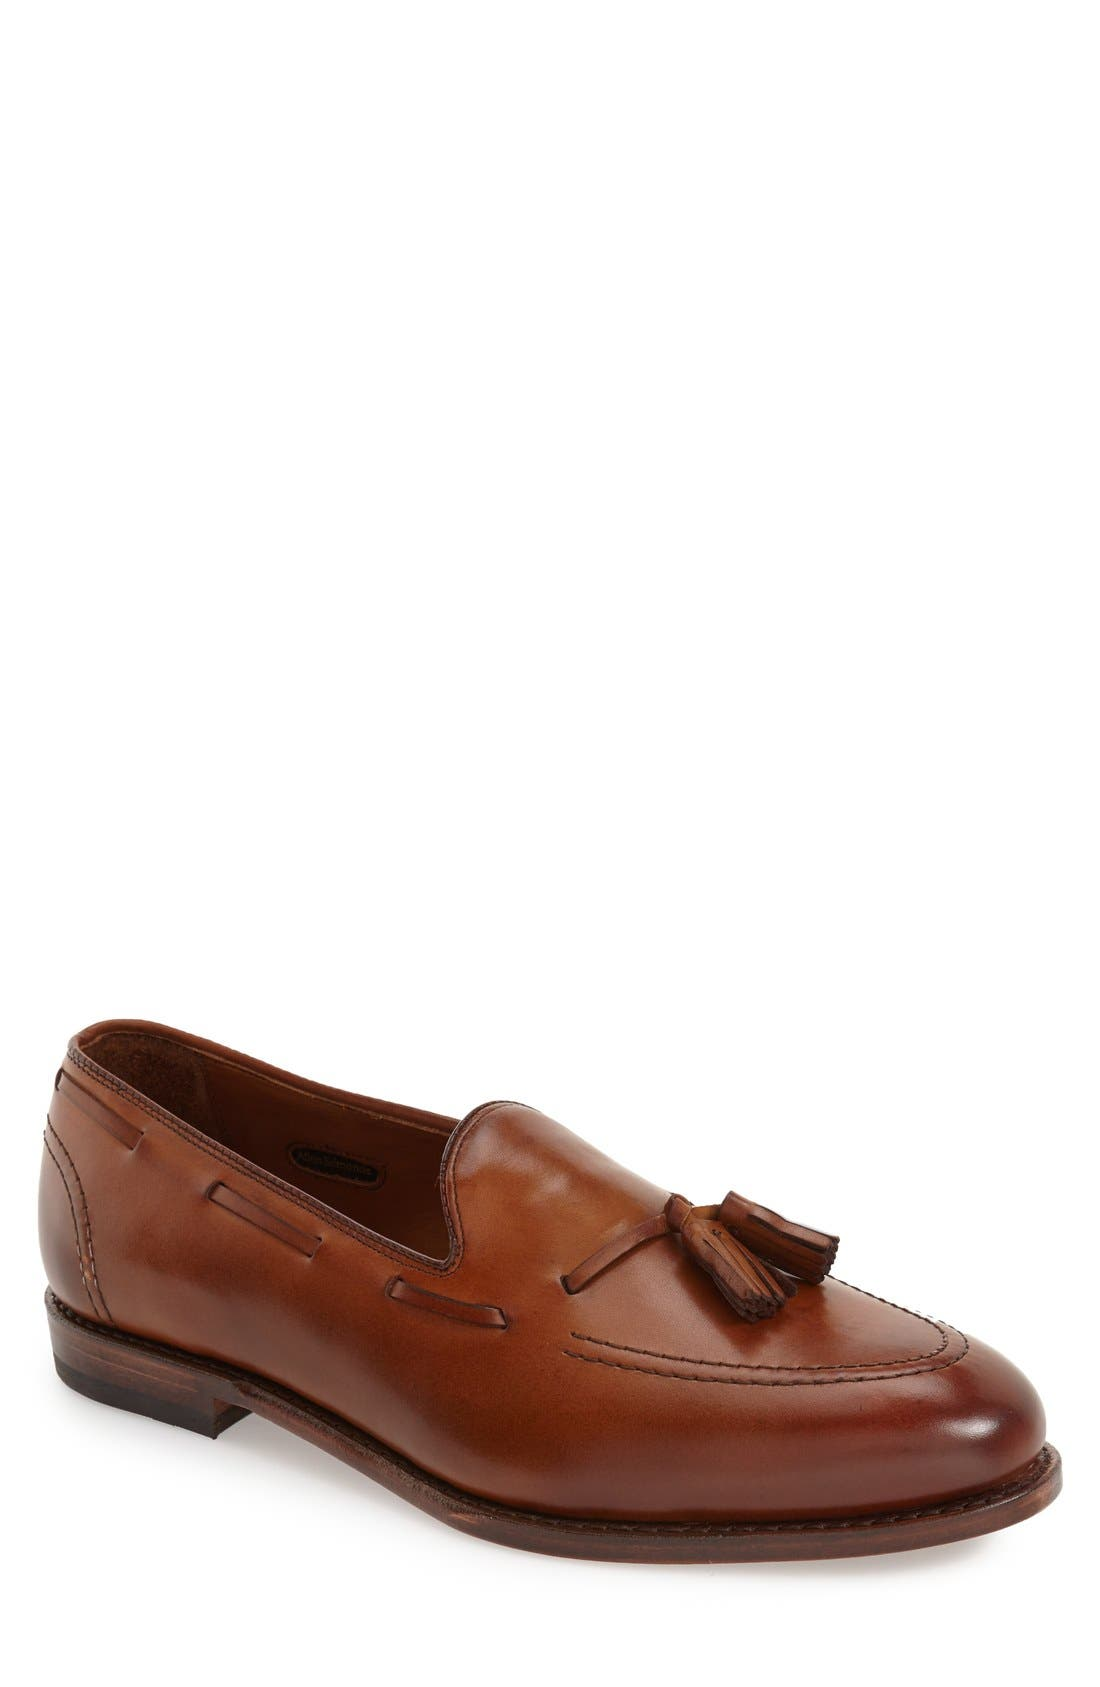 'acheson' Tassel Loafer by Allen Edmonds